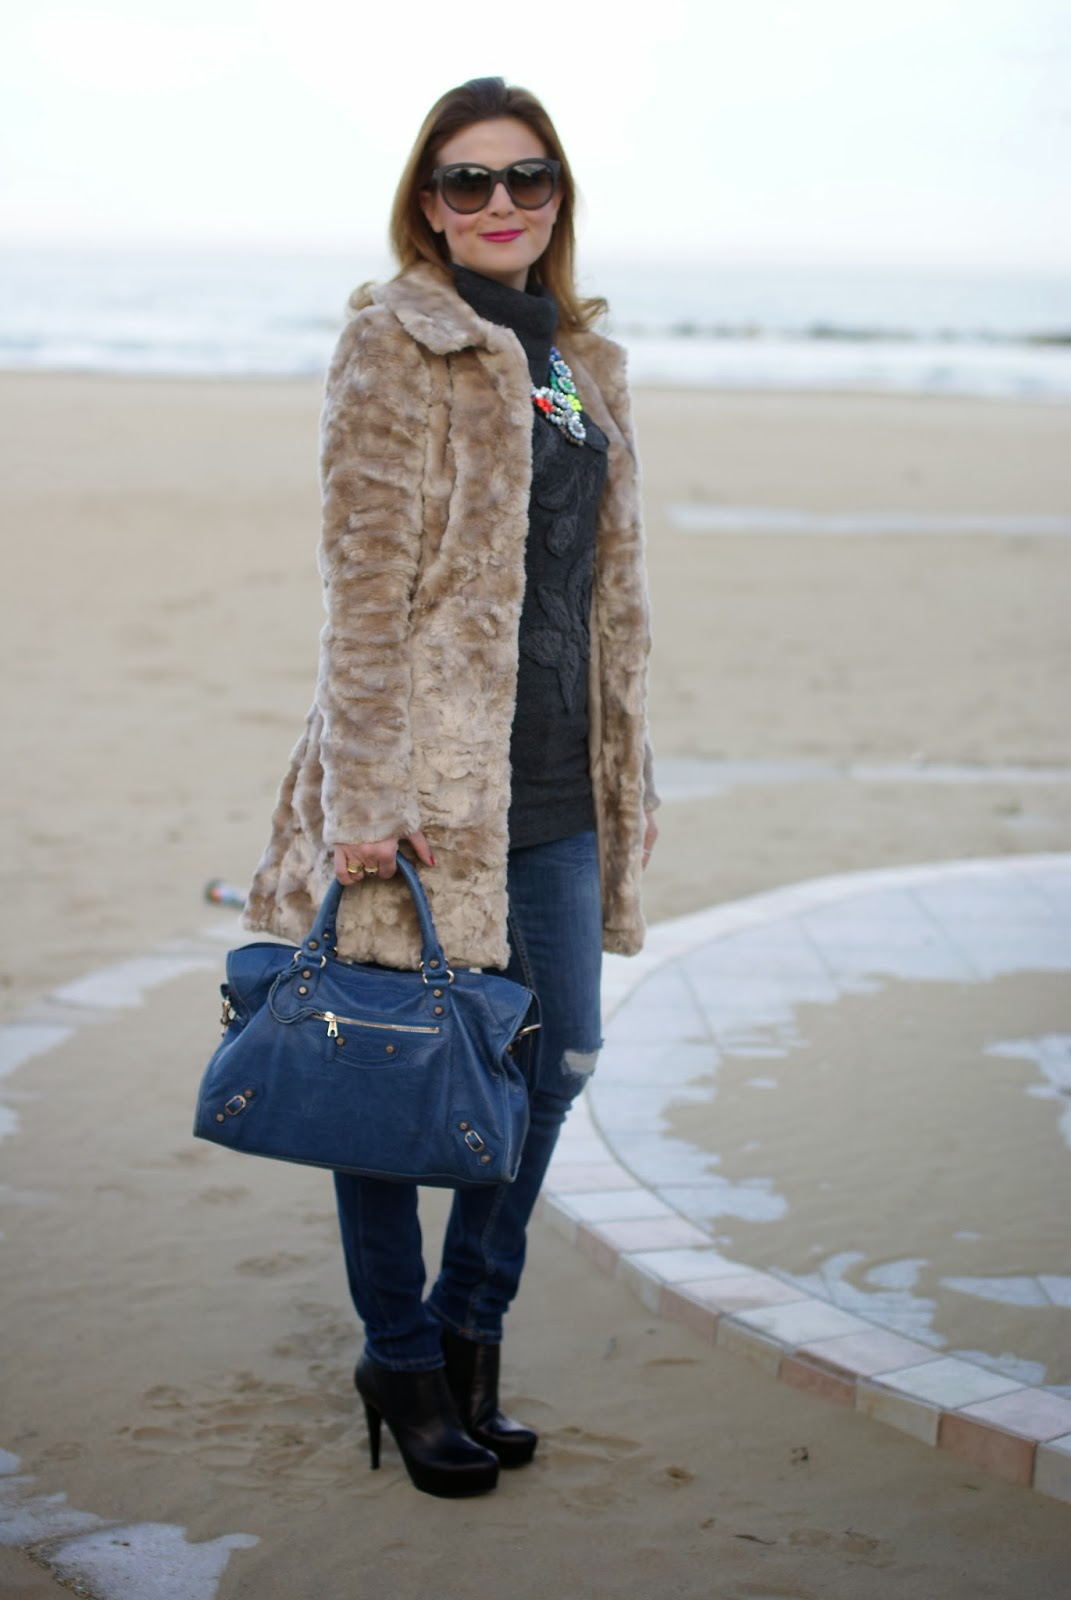 Lipsy faux fur, Balenciaga City bag, Zara skinny jeans, Fashion and Cookies, fashion blogger